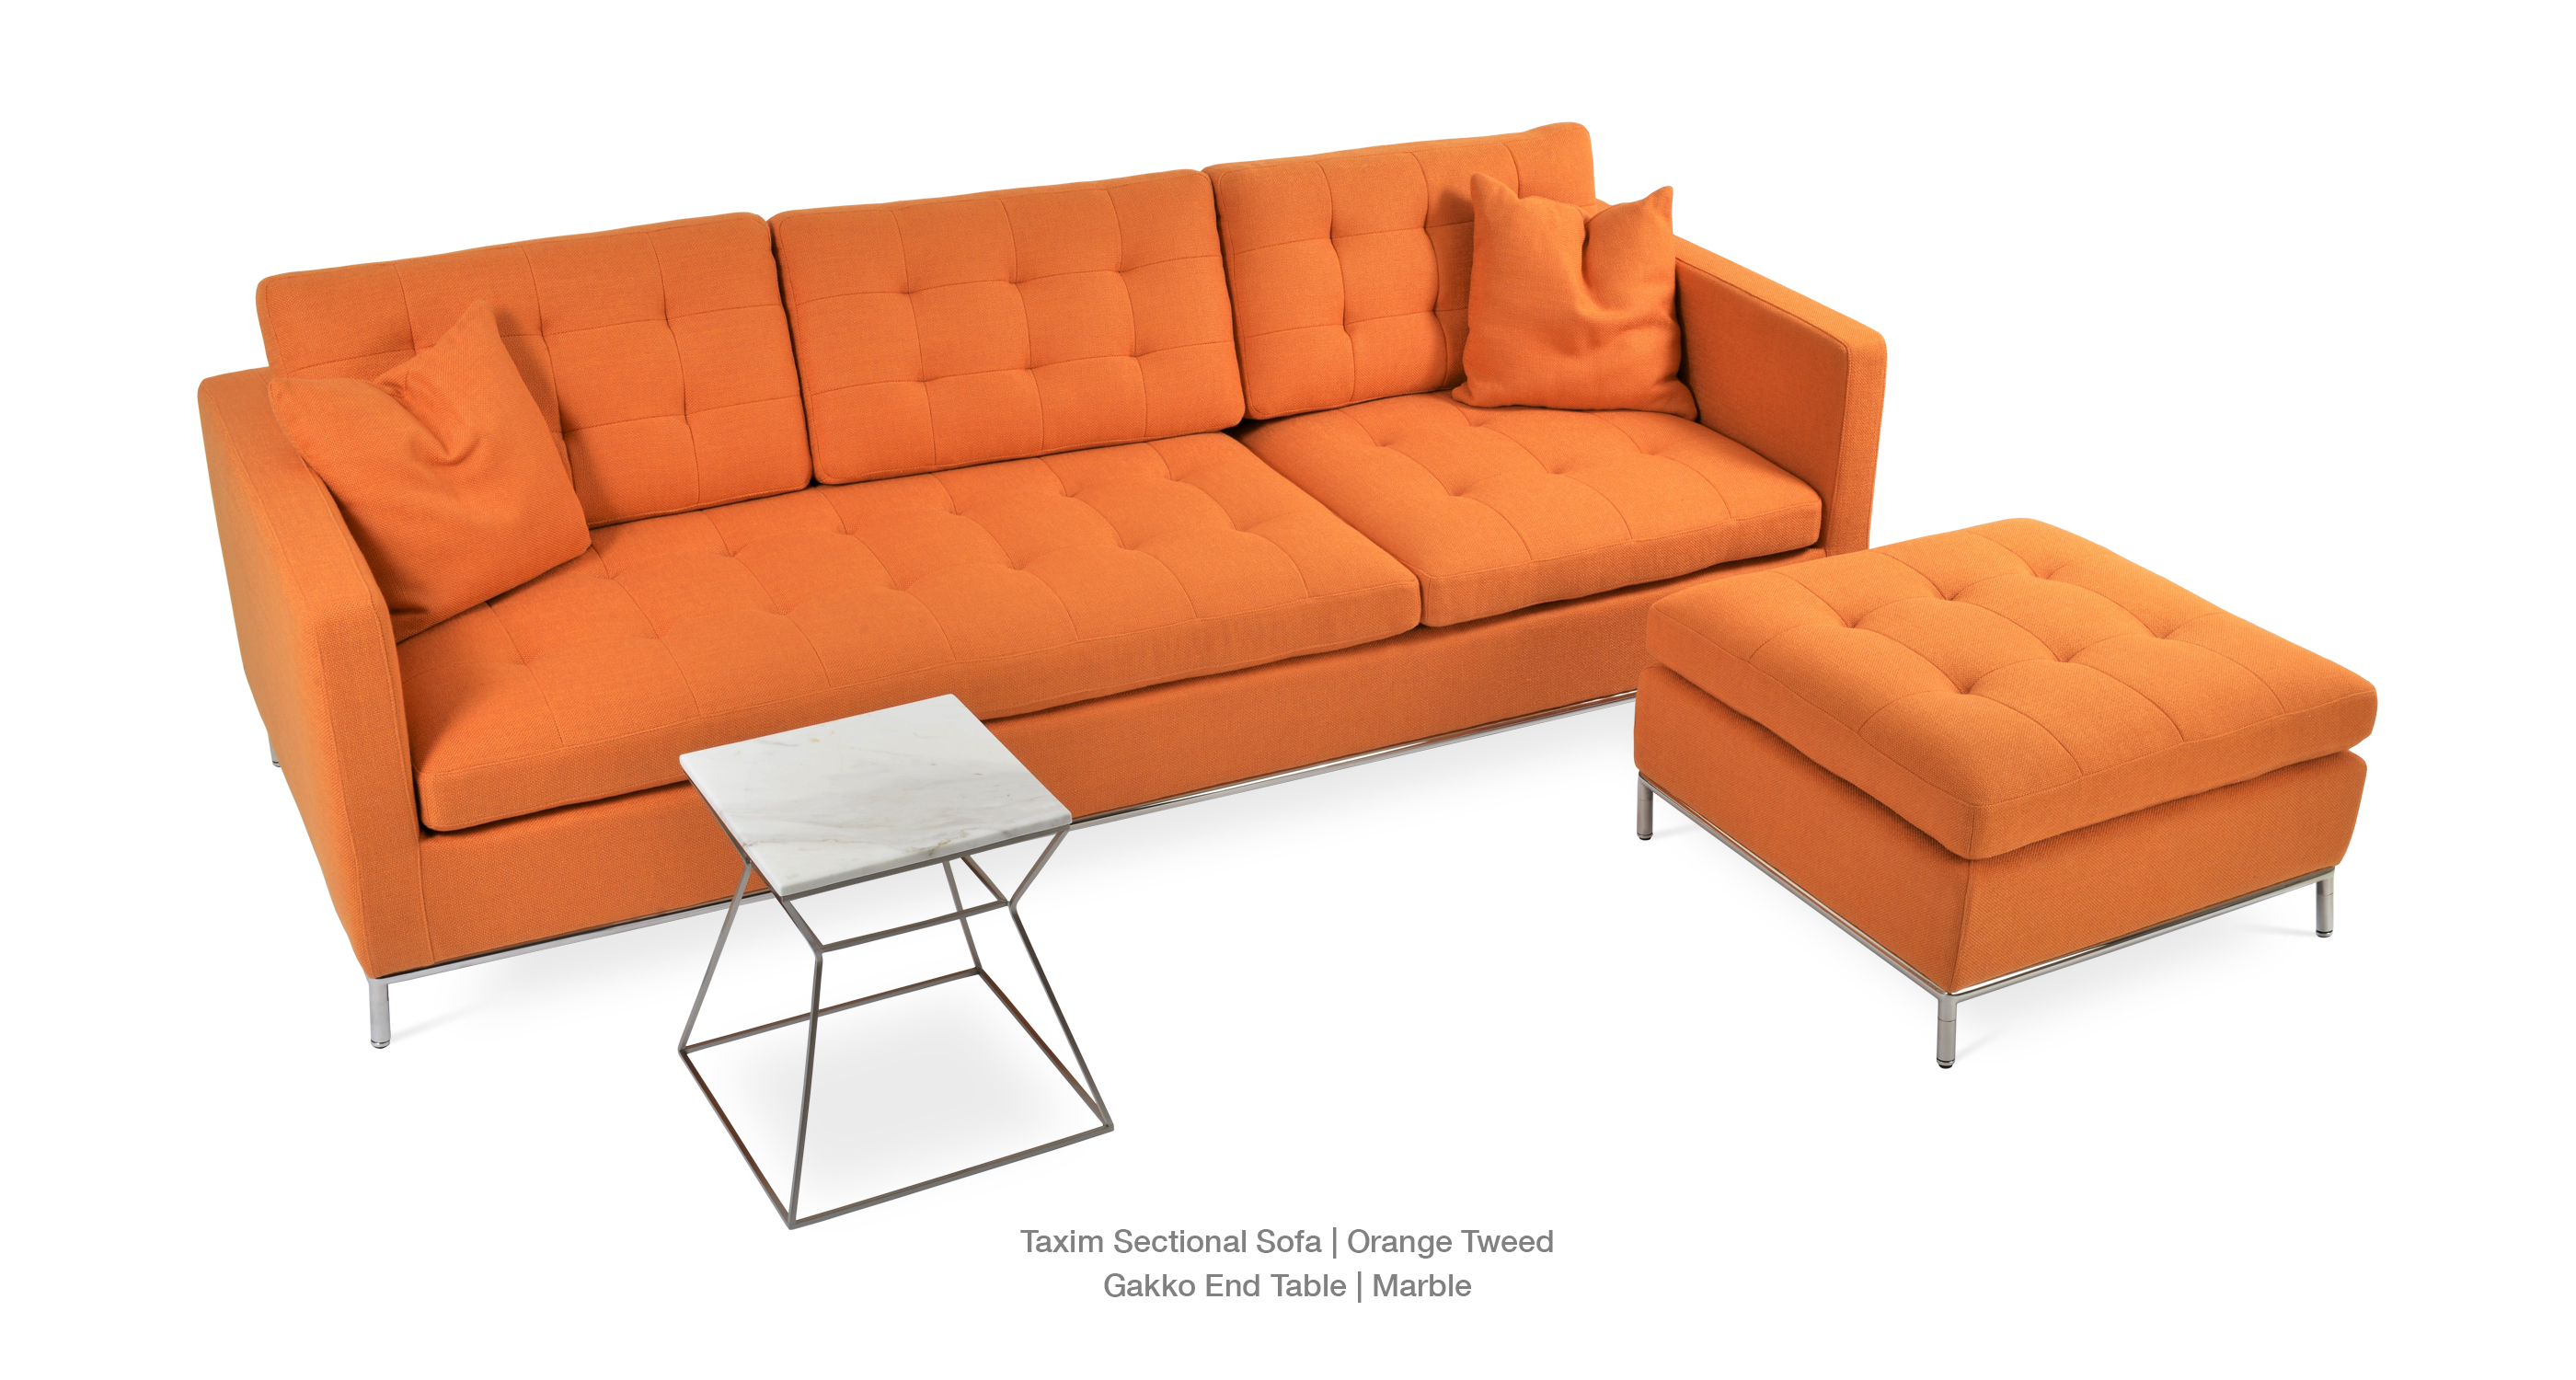 couch design orange ideas brown furniture tjihome light living corner leather and sectional decorating sofa livingroom room